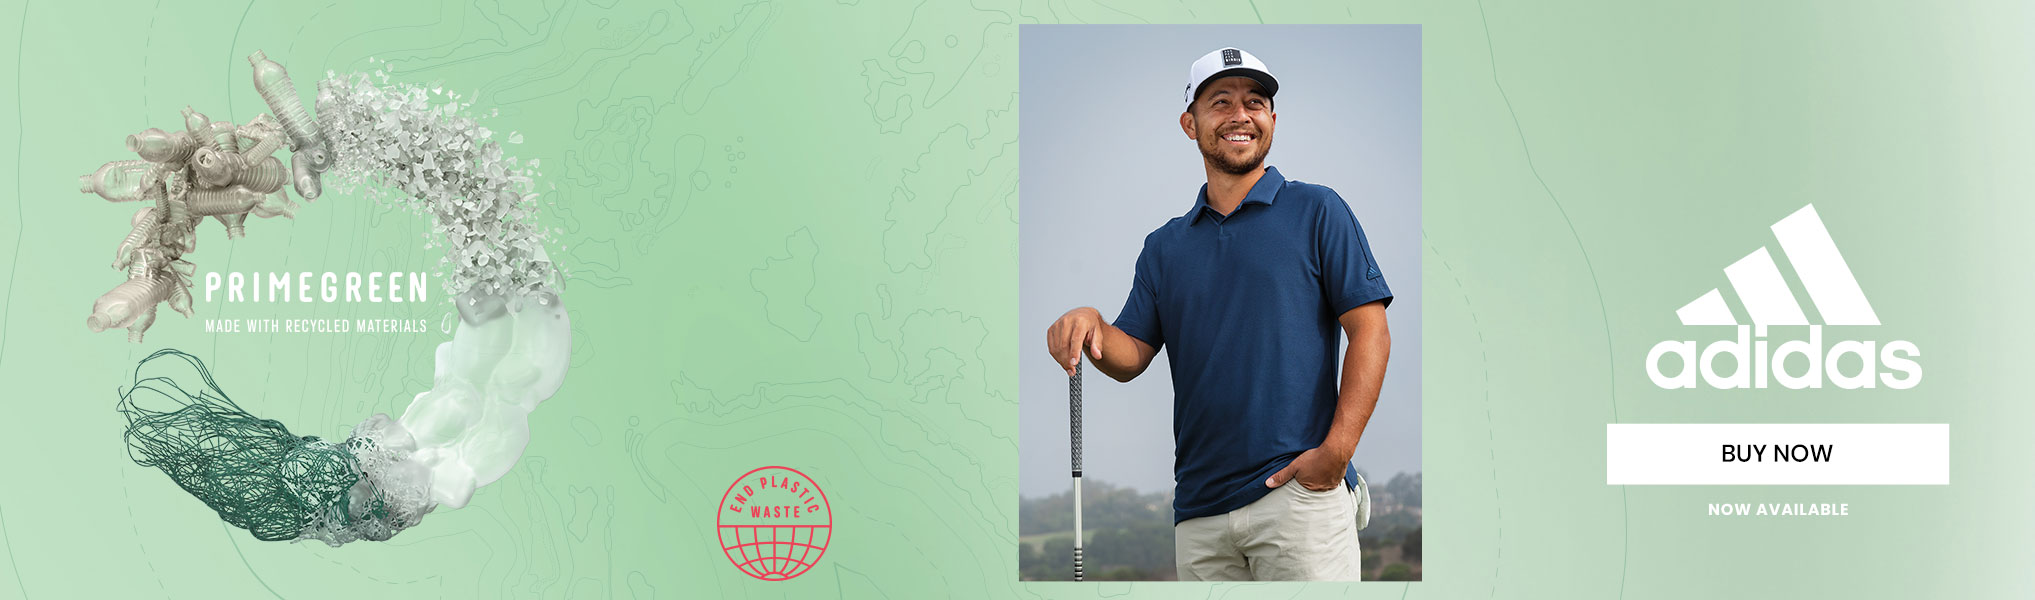 Dustin Johnson wearing Adidas Apparel